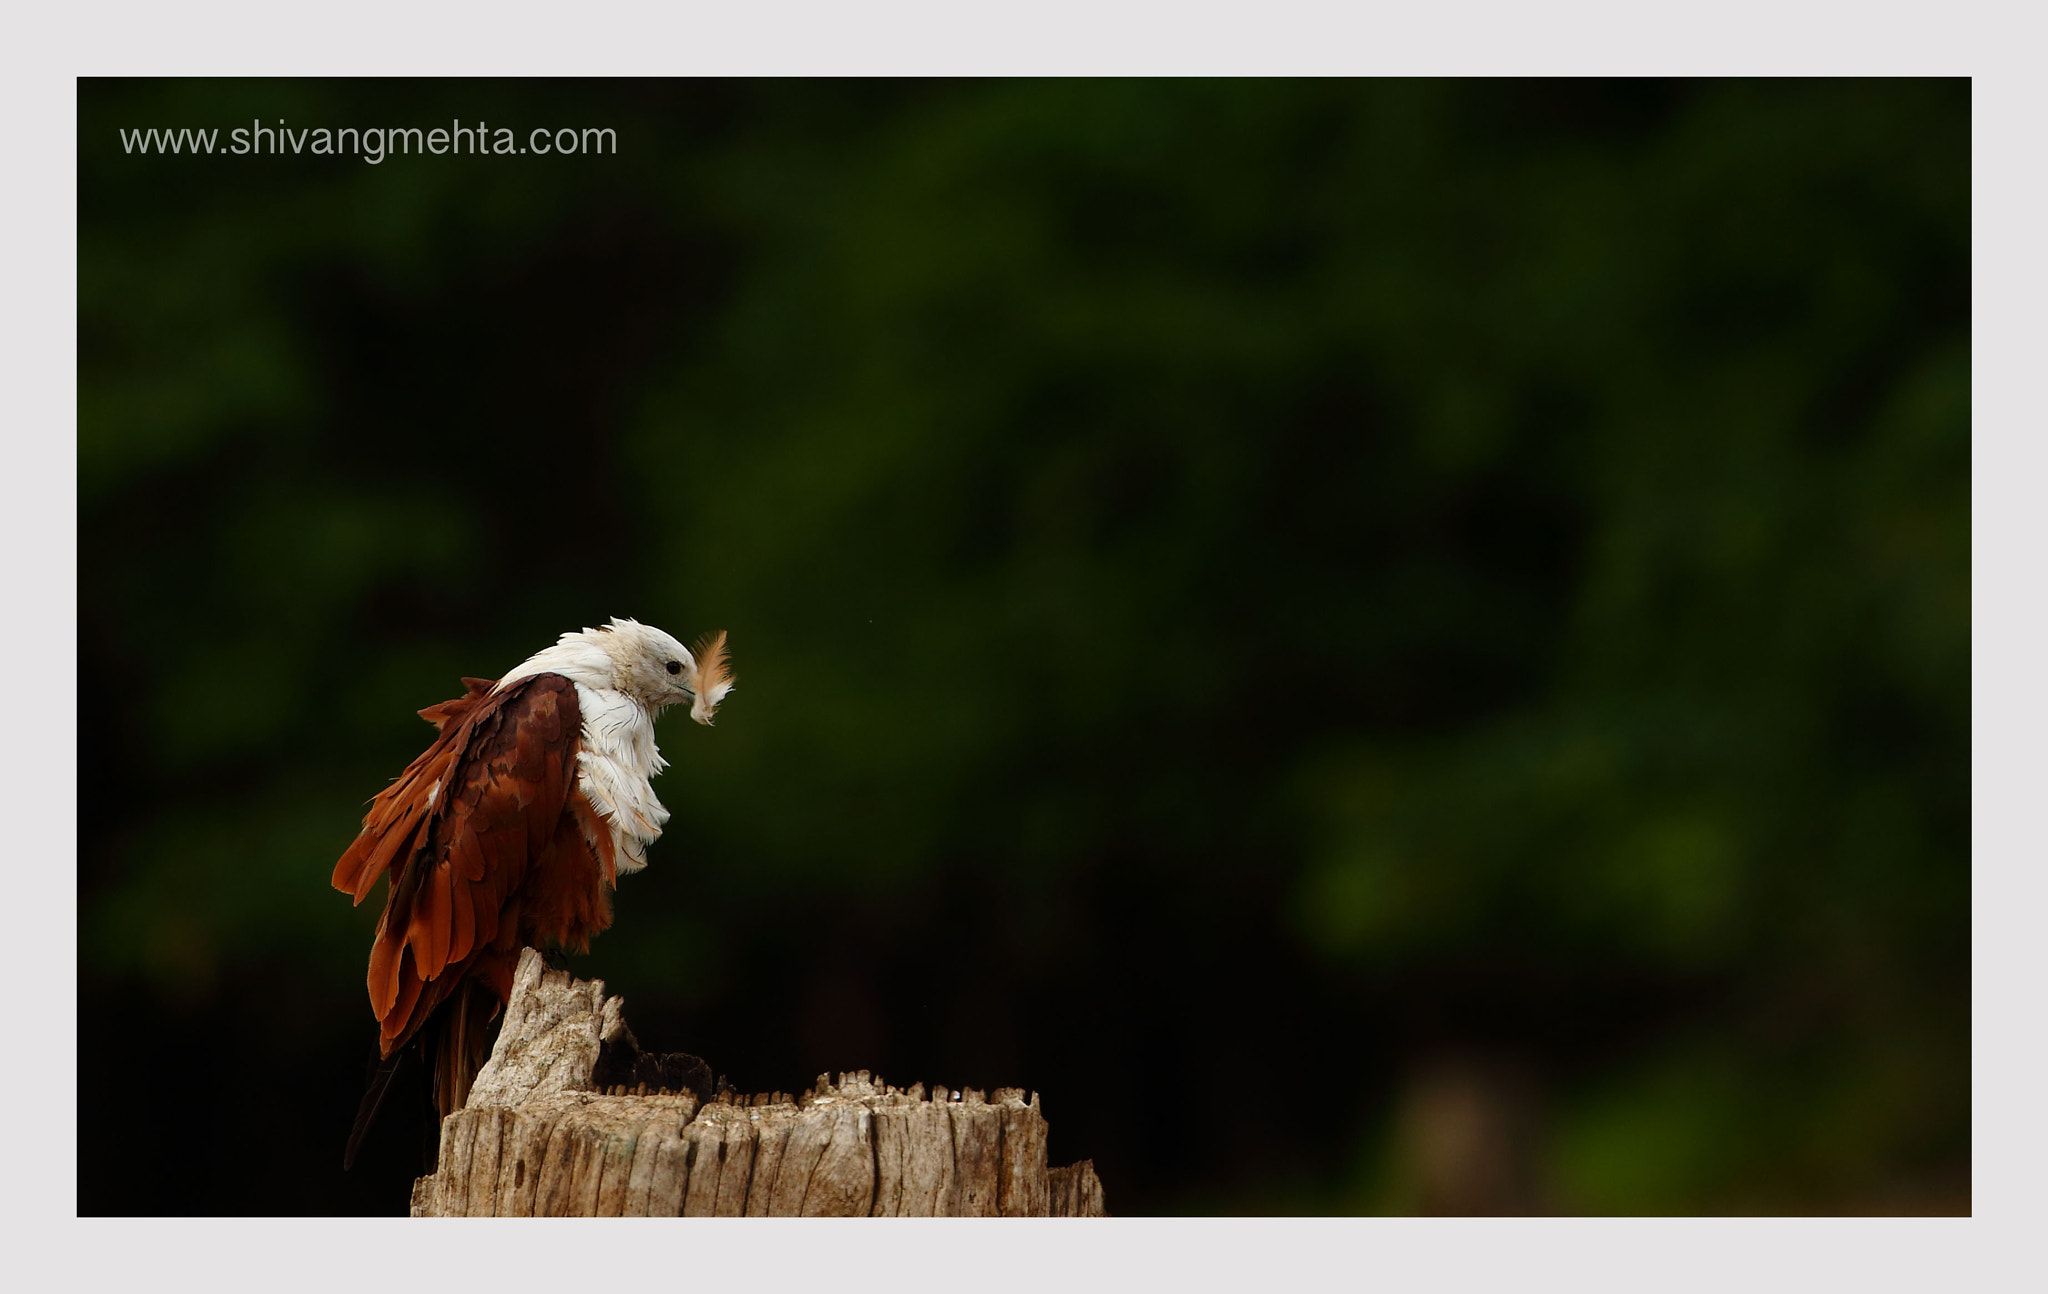 Photograph I lost a feather... by Shivang Mehta on 500px